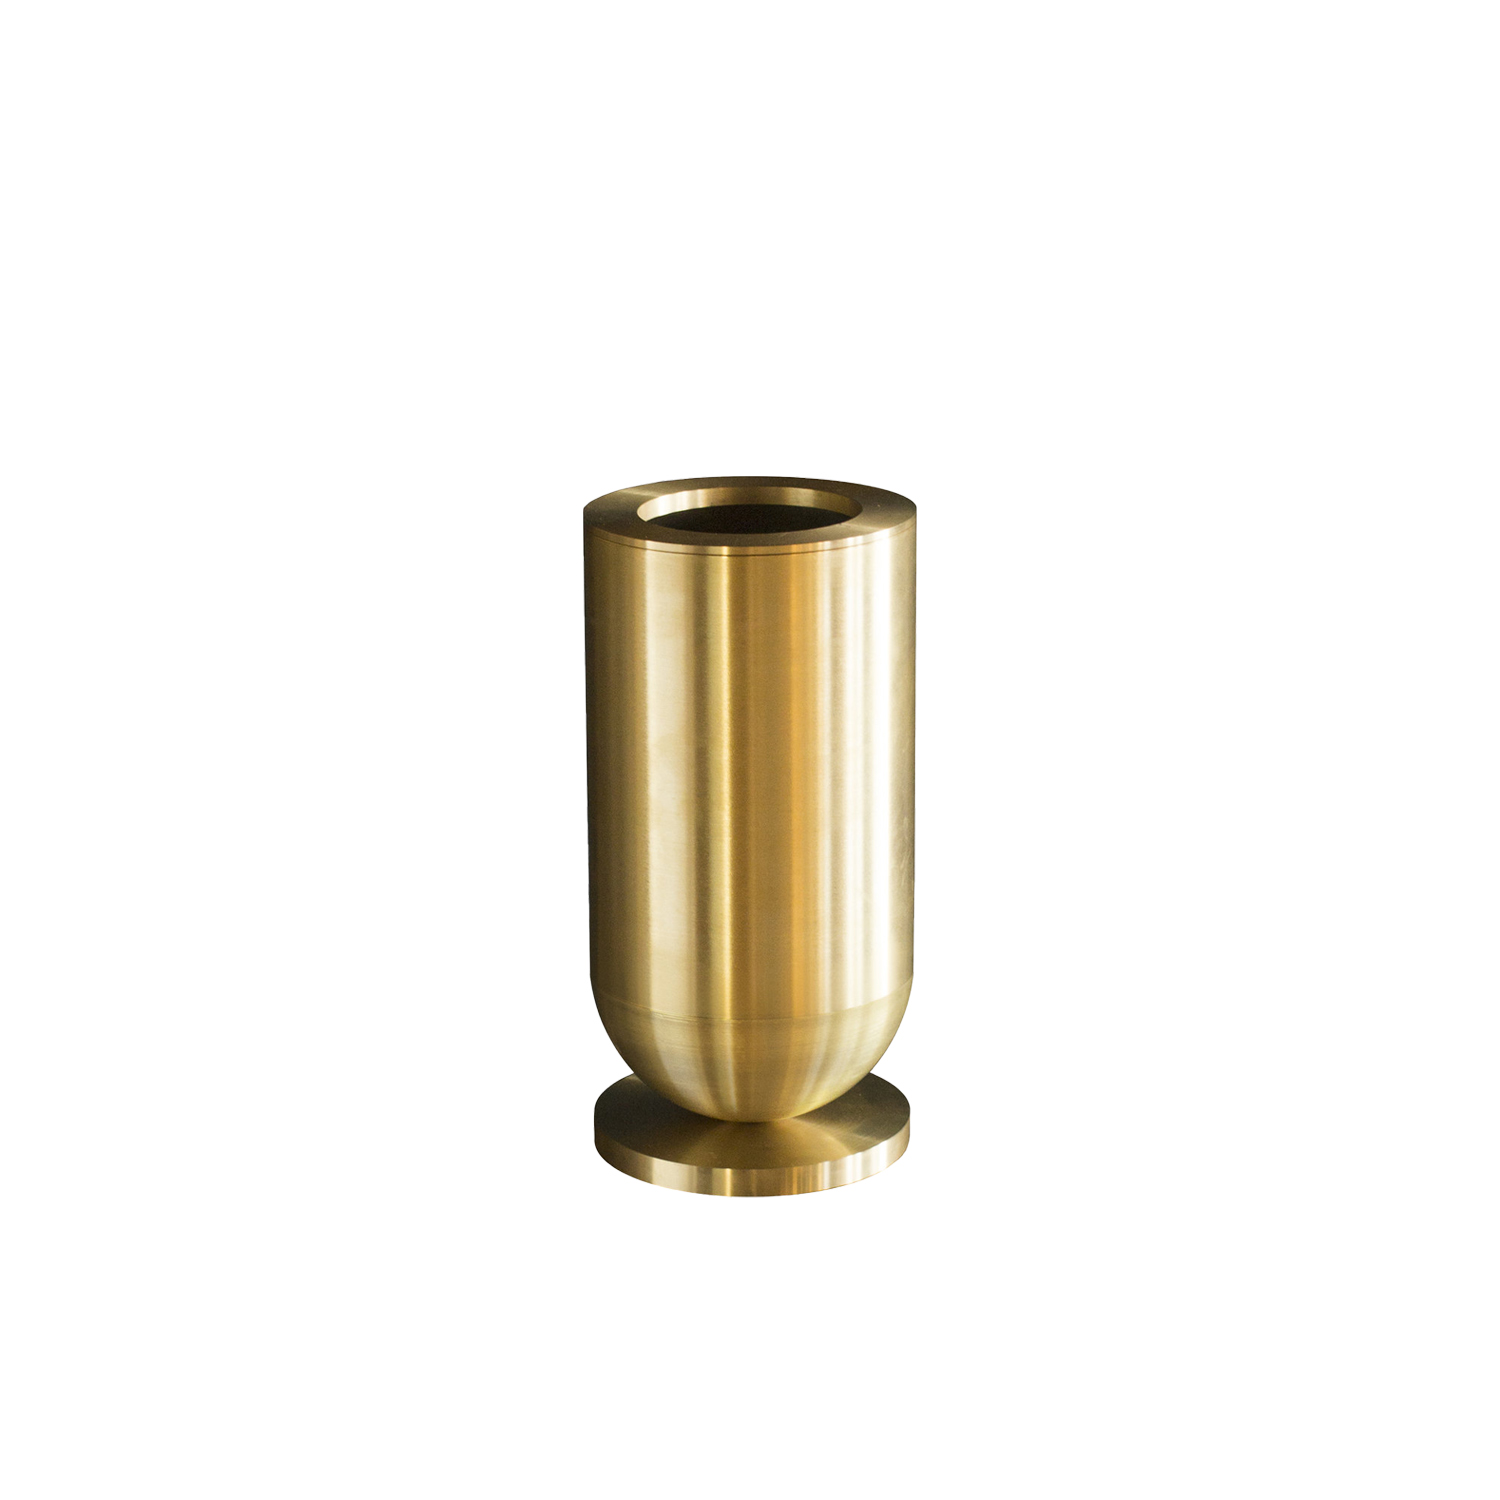 Cofete Vase - Cofete Vase made from full brass it is a unique piece. Hand made. Available in two sizes. Inside the vase there is a glass water container. Each vase has the signature.